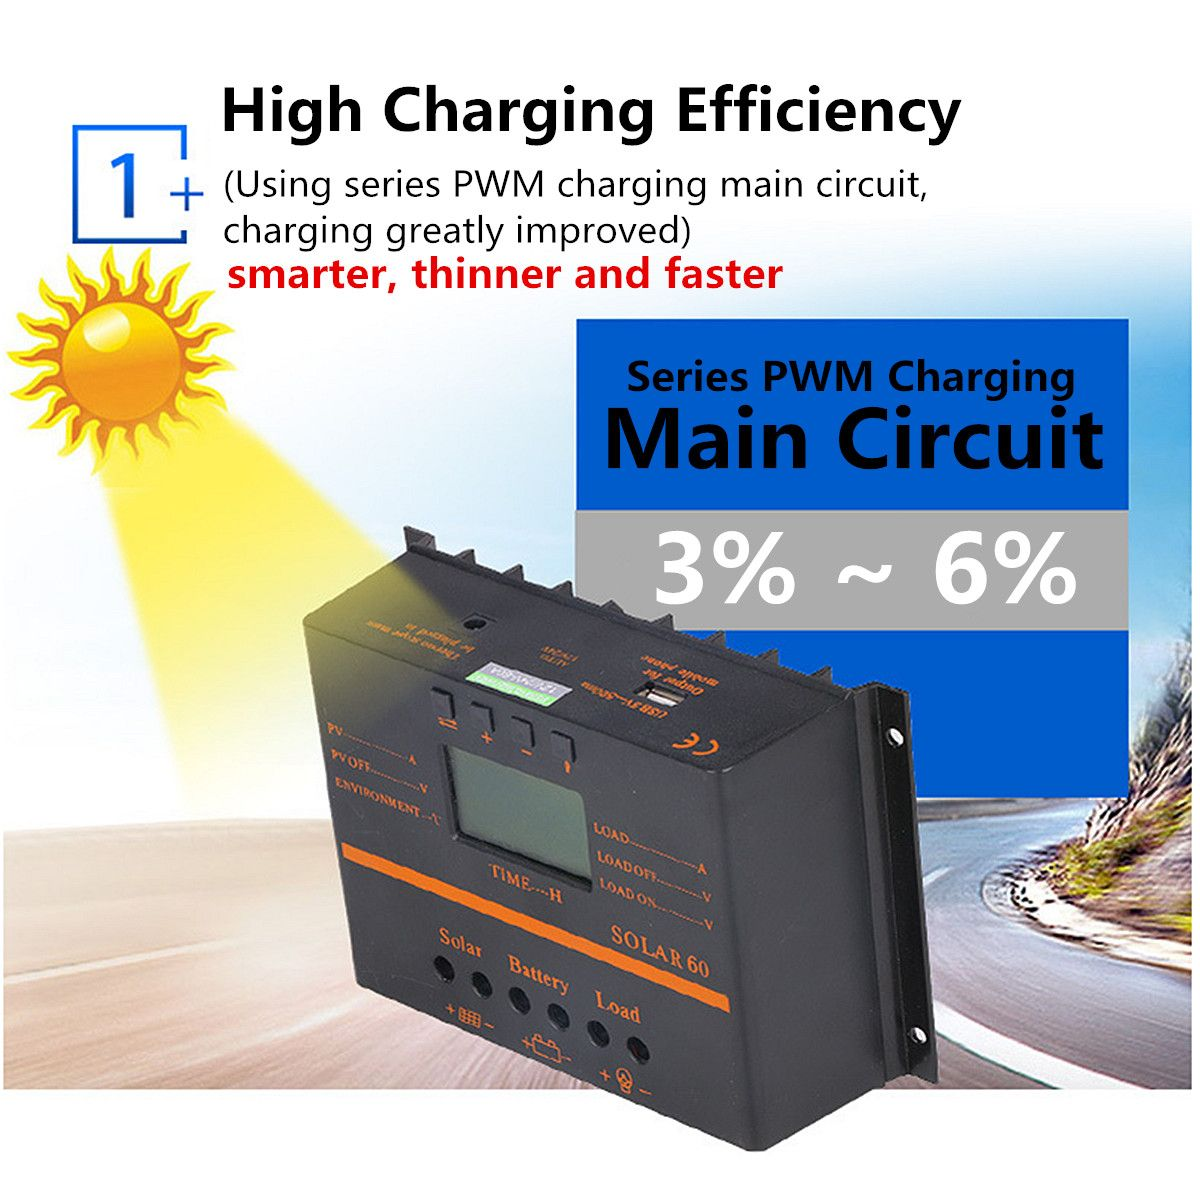 Solar Panel Charge Controller Battery Regulator 12V/24V Auto LCD Display PWM USB 40A/50A/60A/80A Overload Protection Automatic